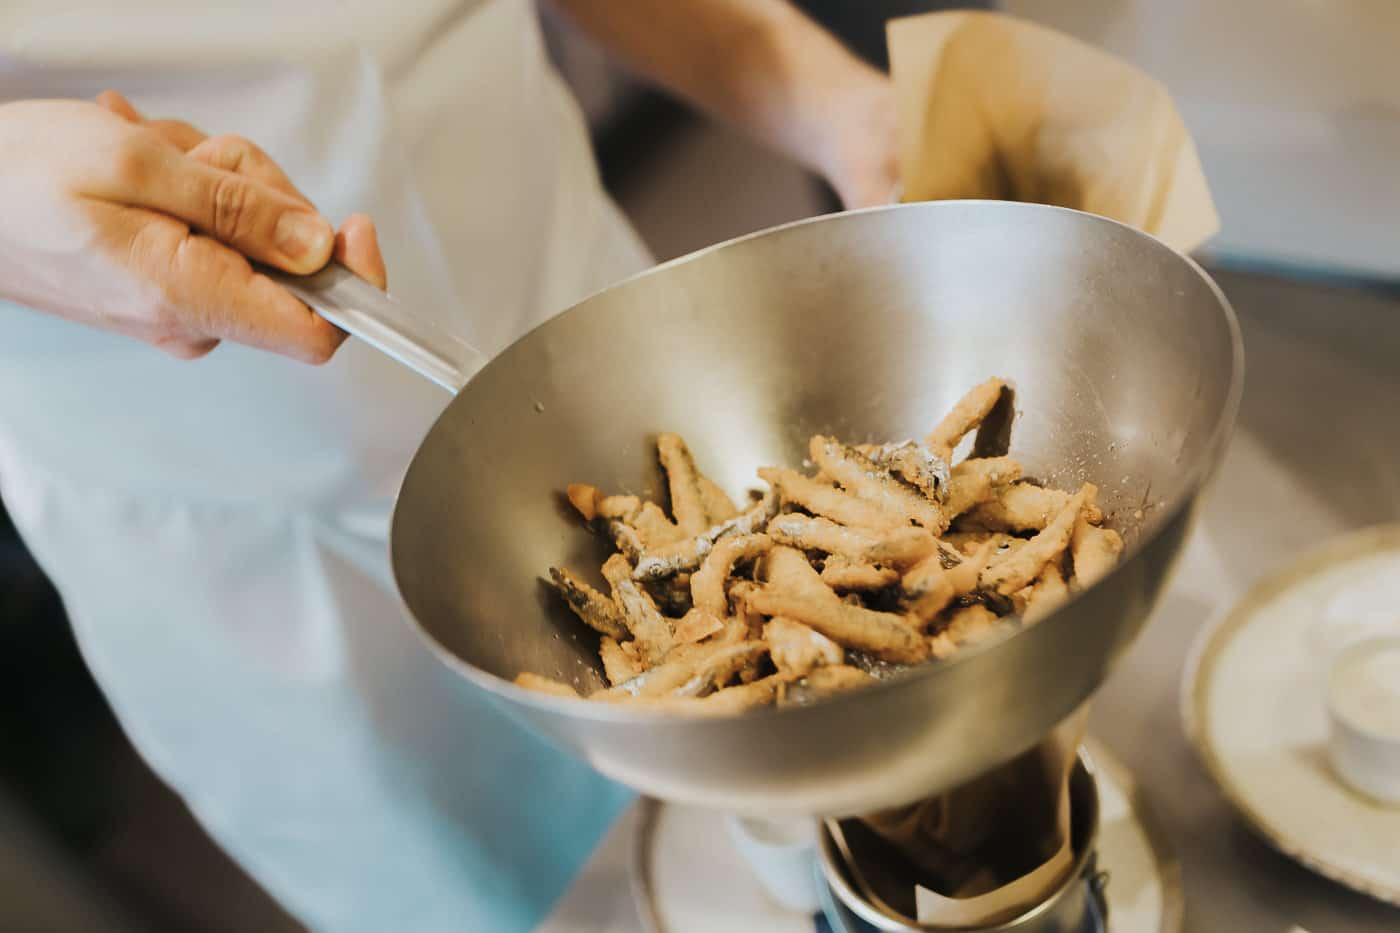 Whitebait being seasoned